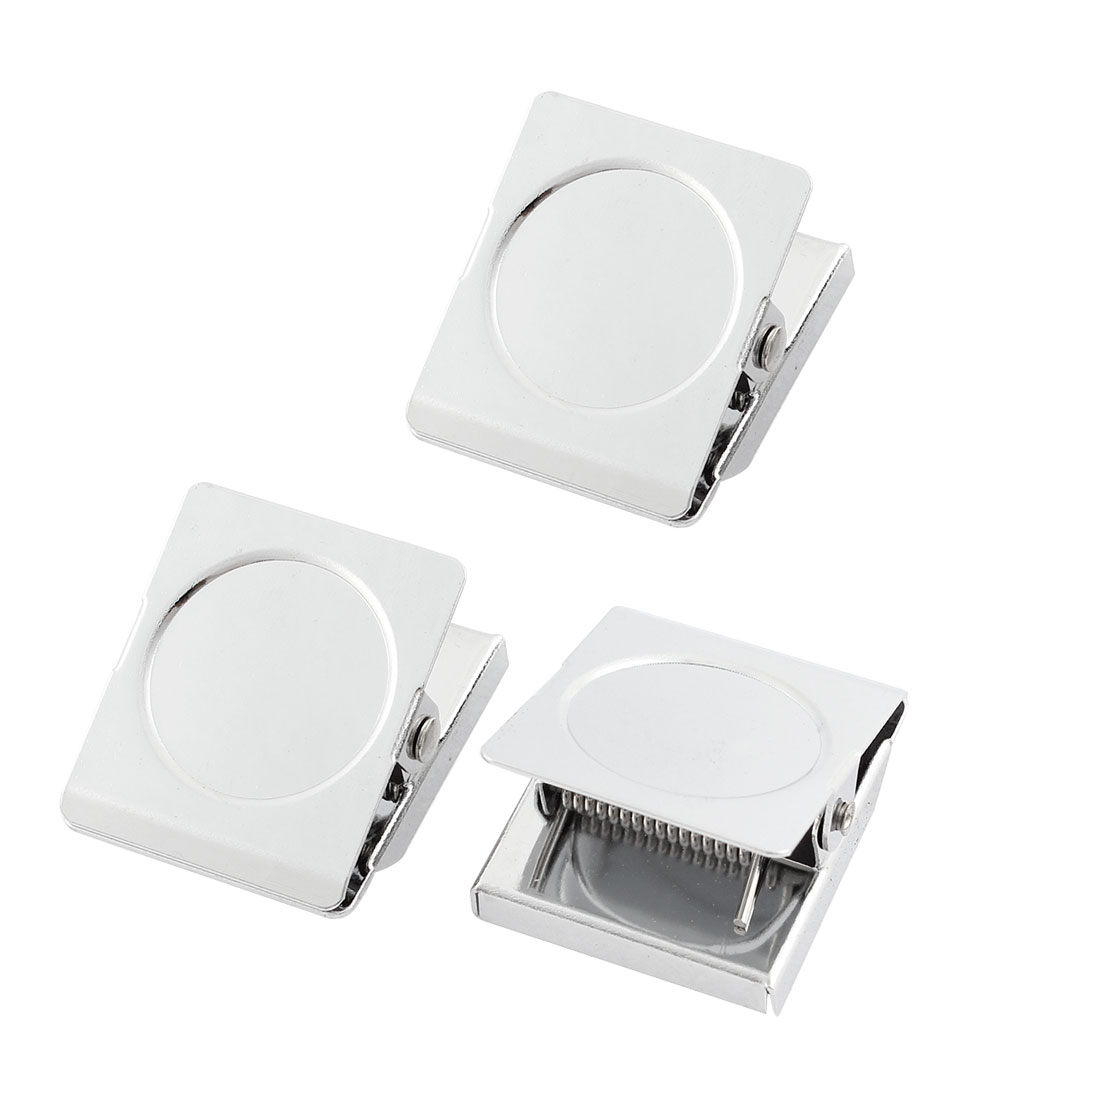 Unique Bargains Spring Loaded Magnetic Wall Clip Refrigerator Memo Note Message Holder 3pcs